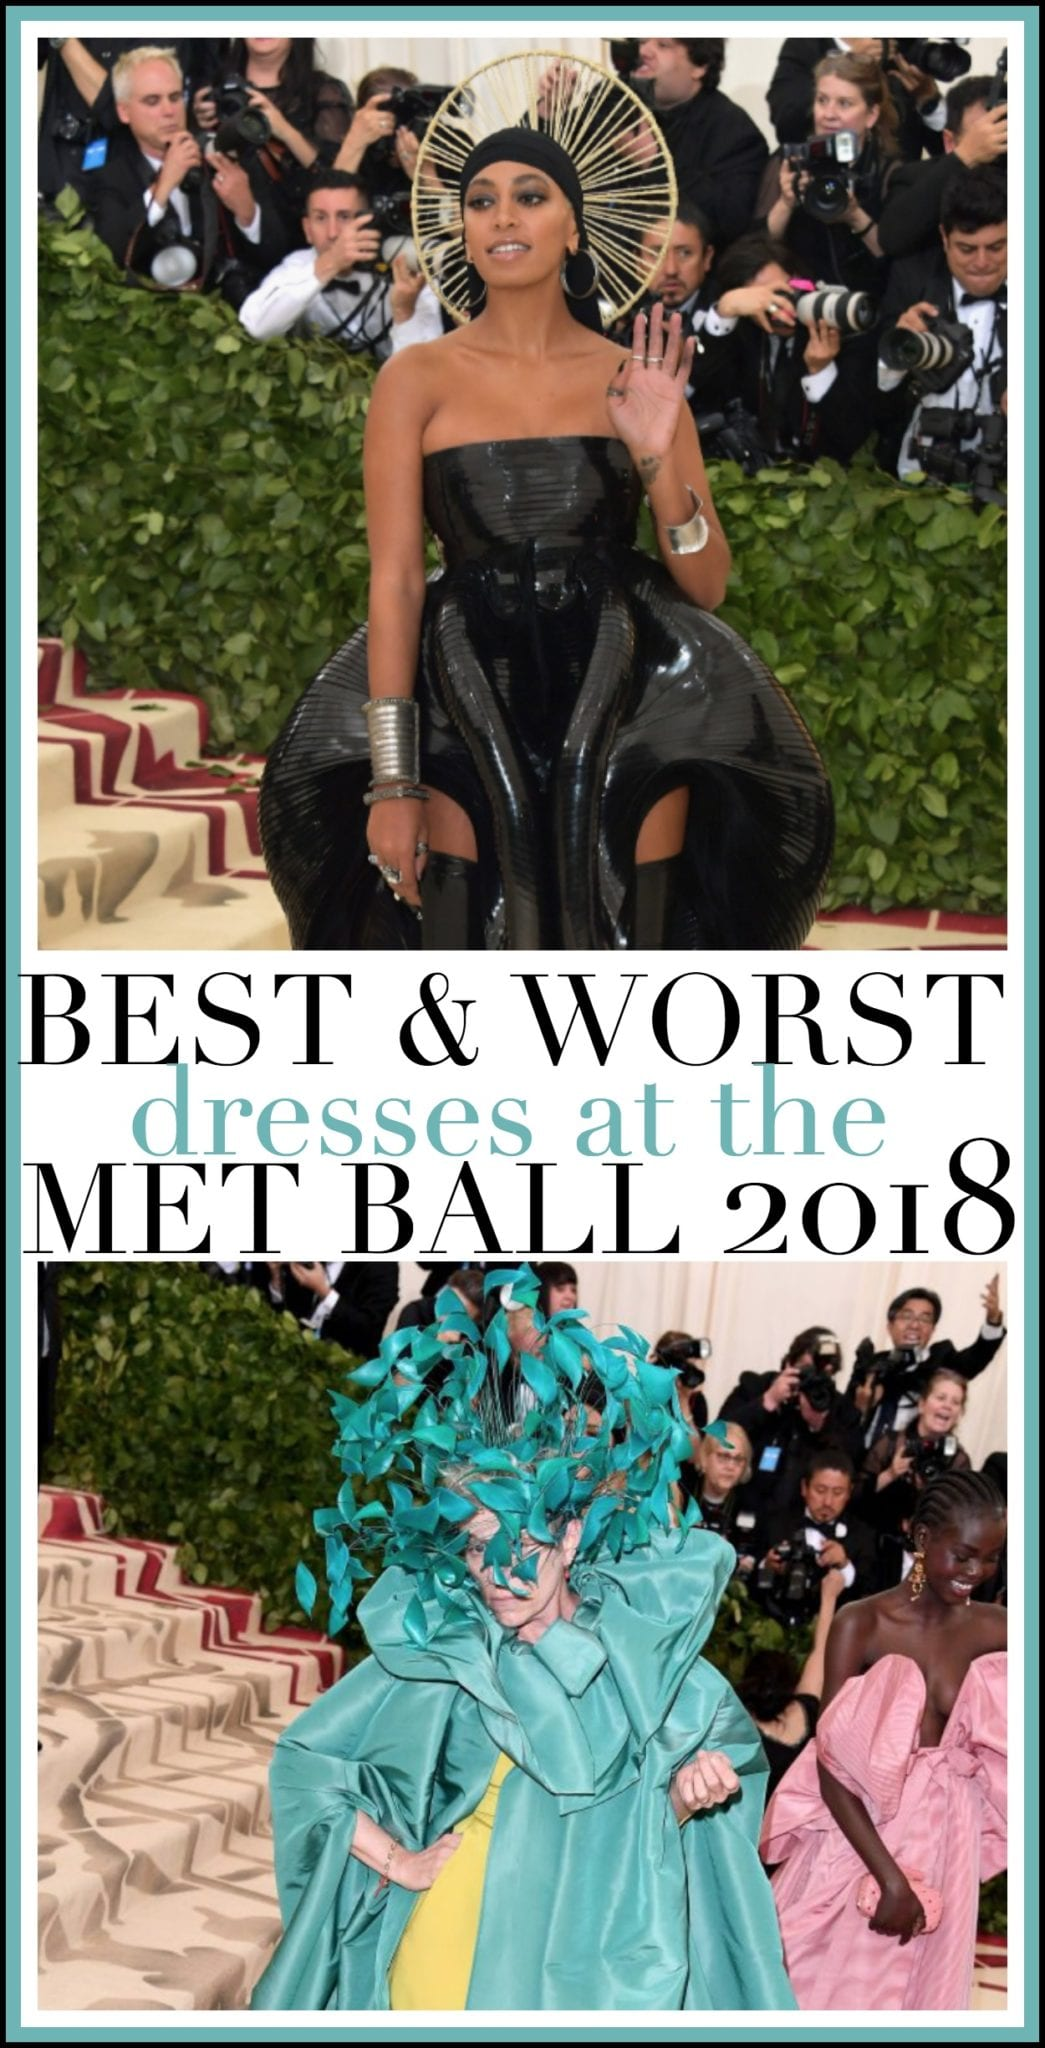 met ball dresses, best dressed met ball, worst dressed met ball